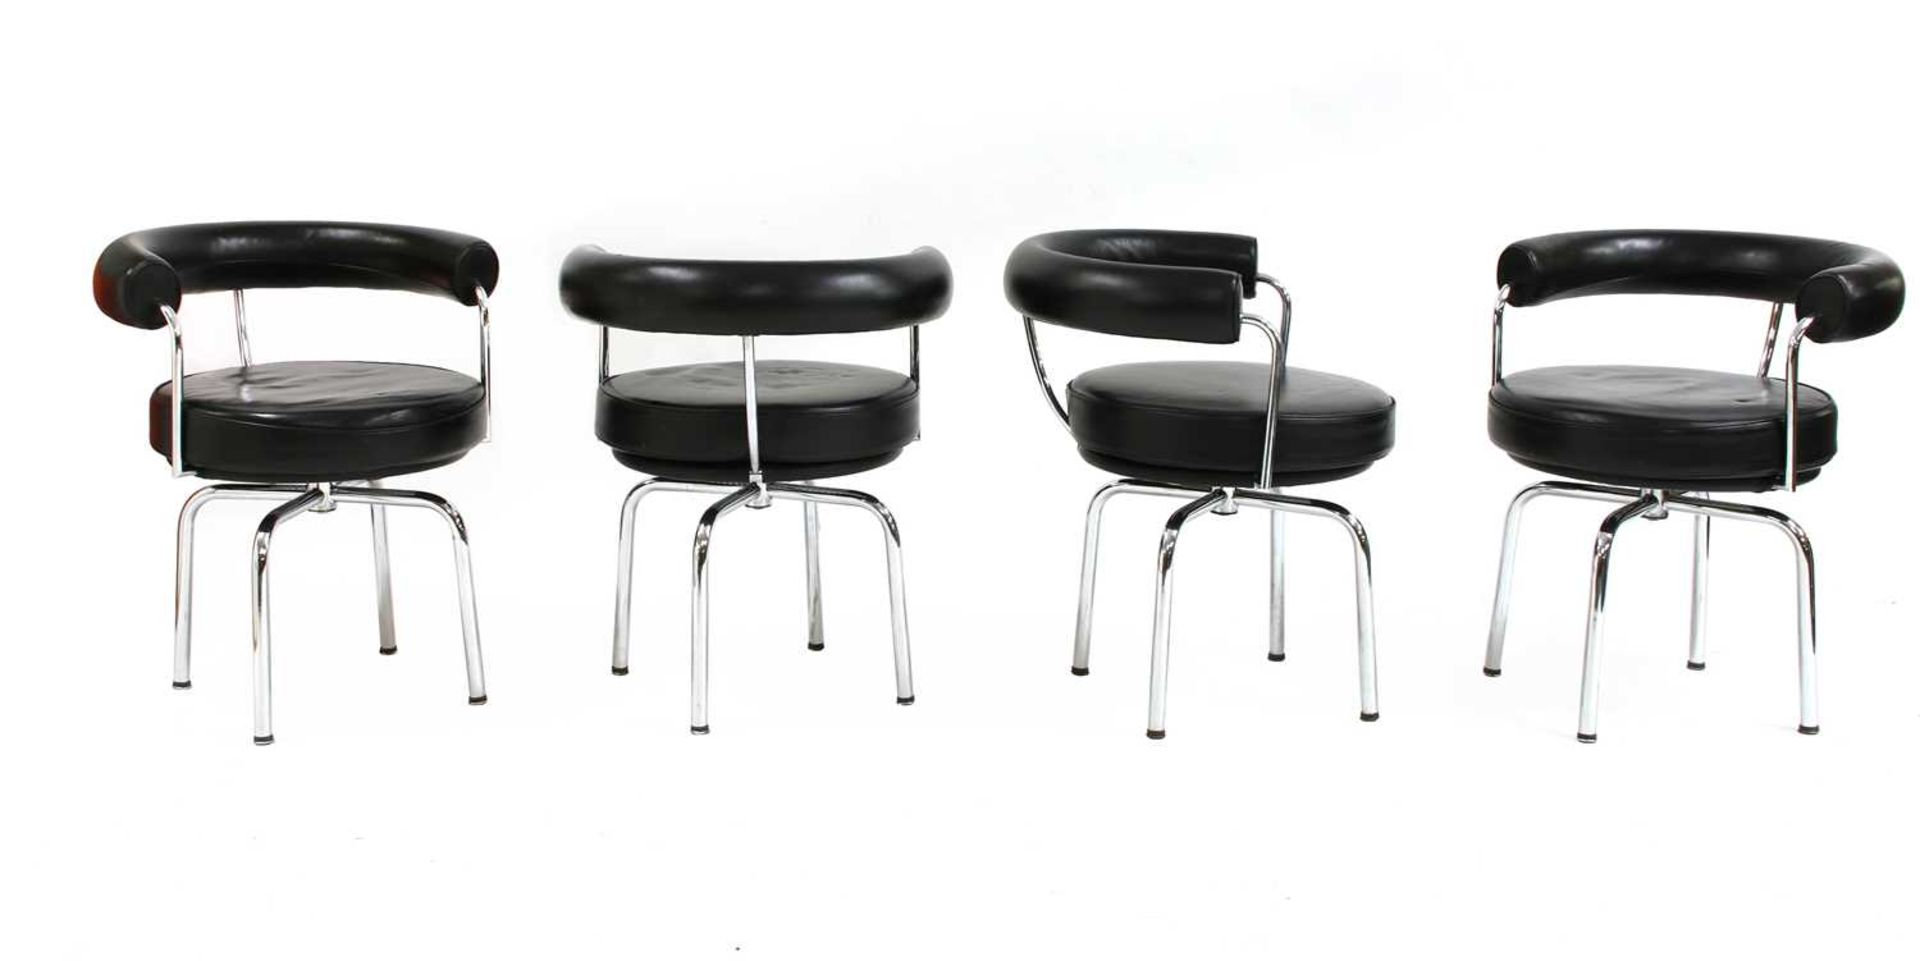 Four contemporary revolving chairs, - Image 3 of 4